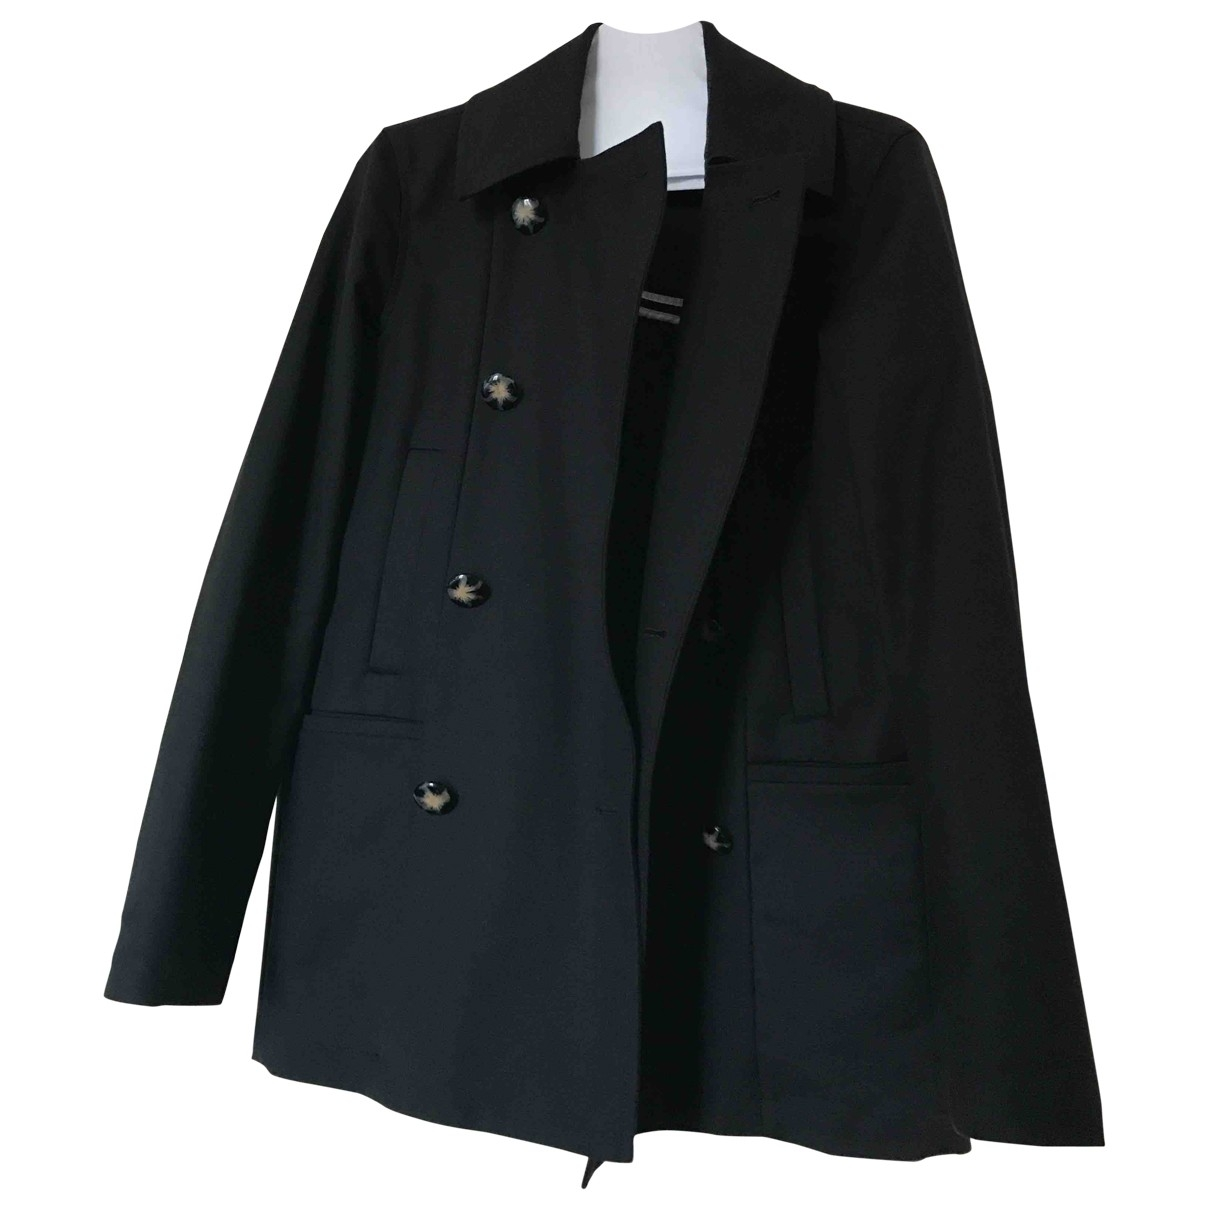 Hôtel Particulier \N Black Cotton coat for Women S International